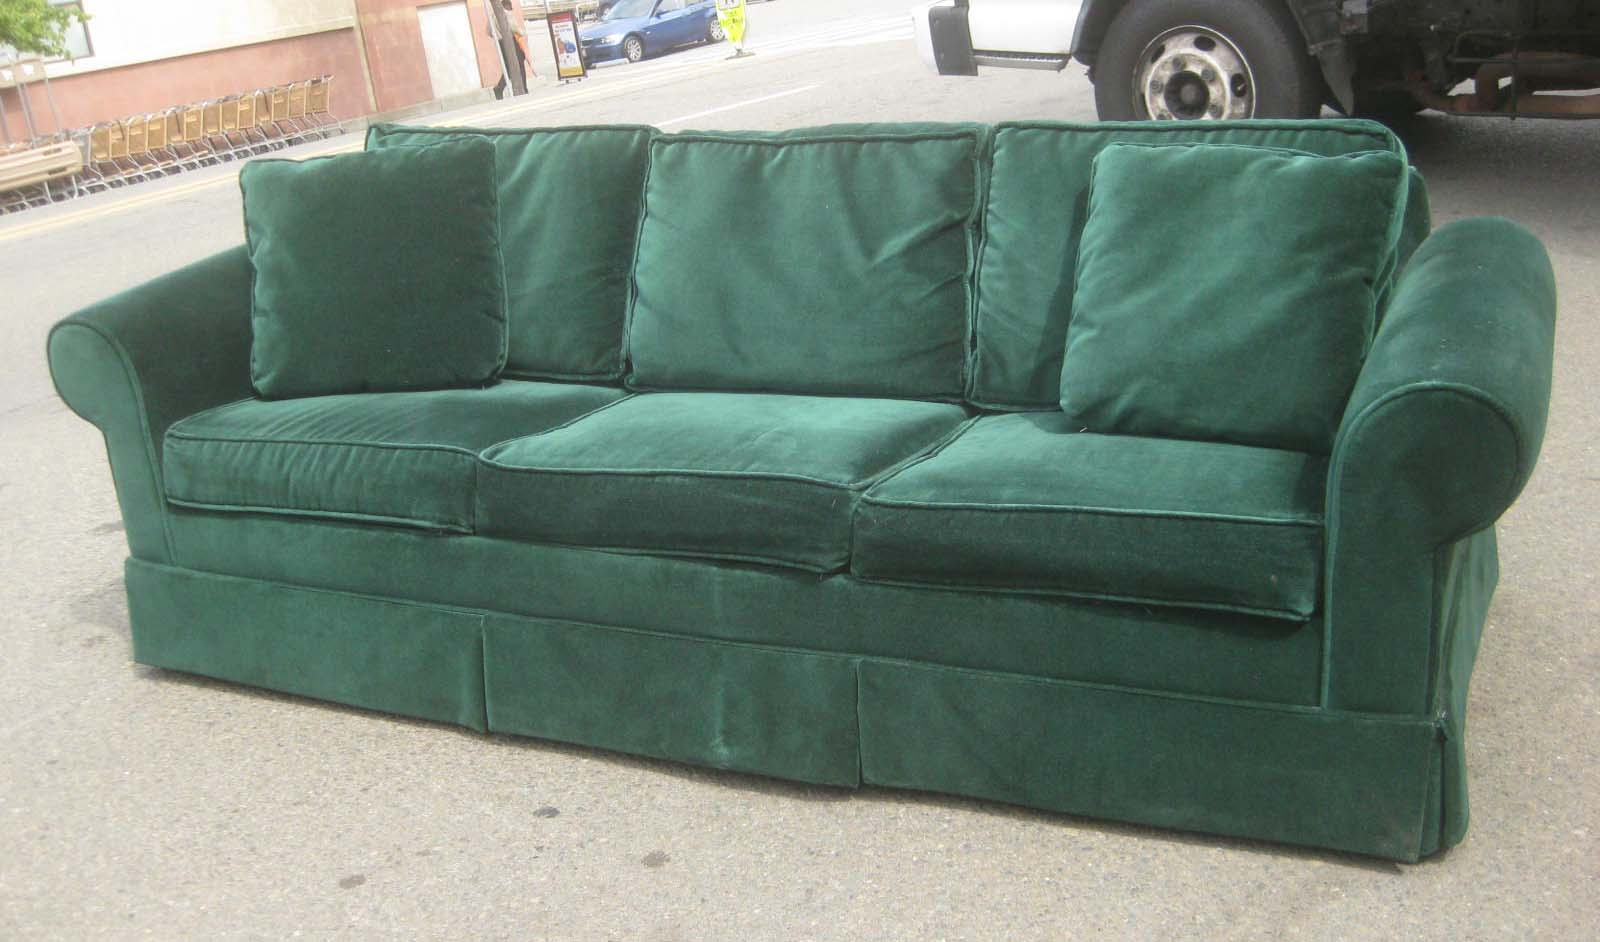 Uhuru Furniture Amp Collectibles Sold Kelly Green Sofabed